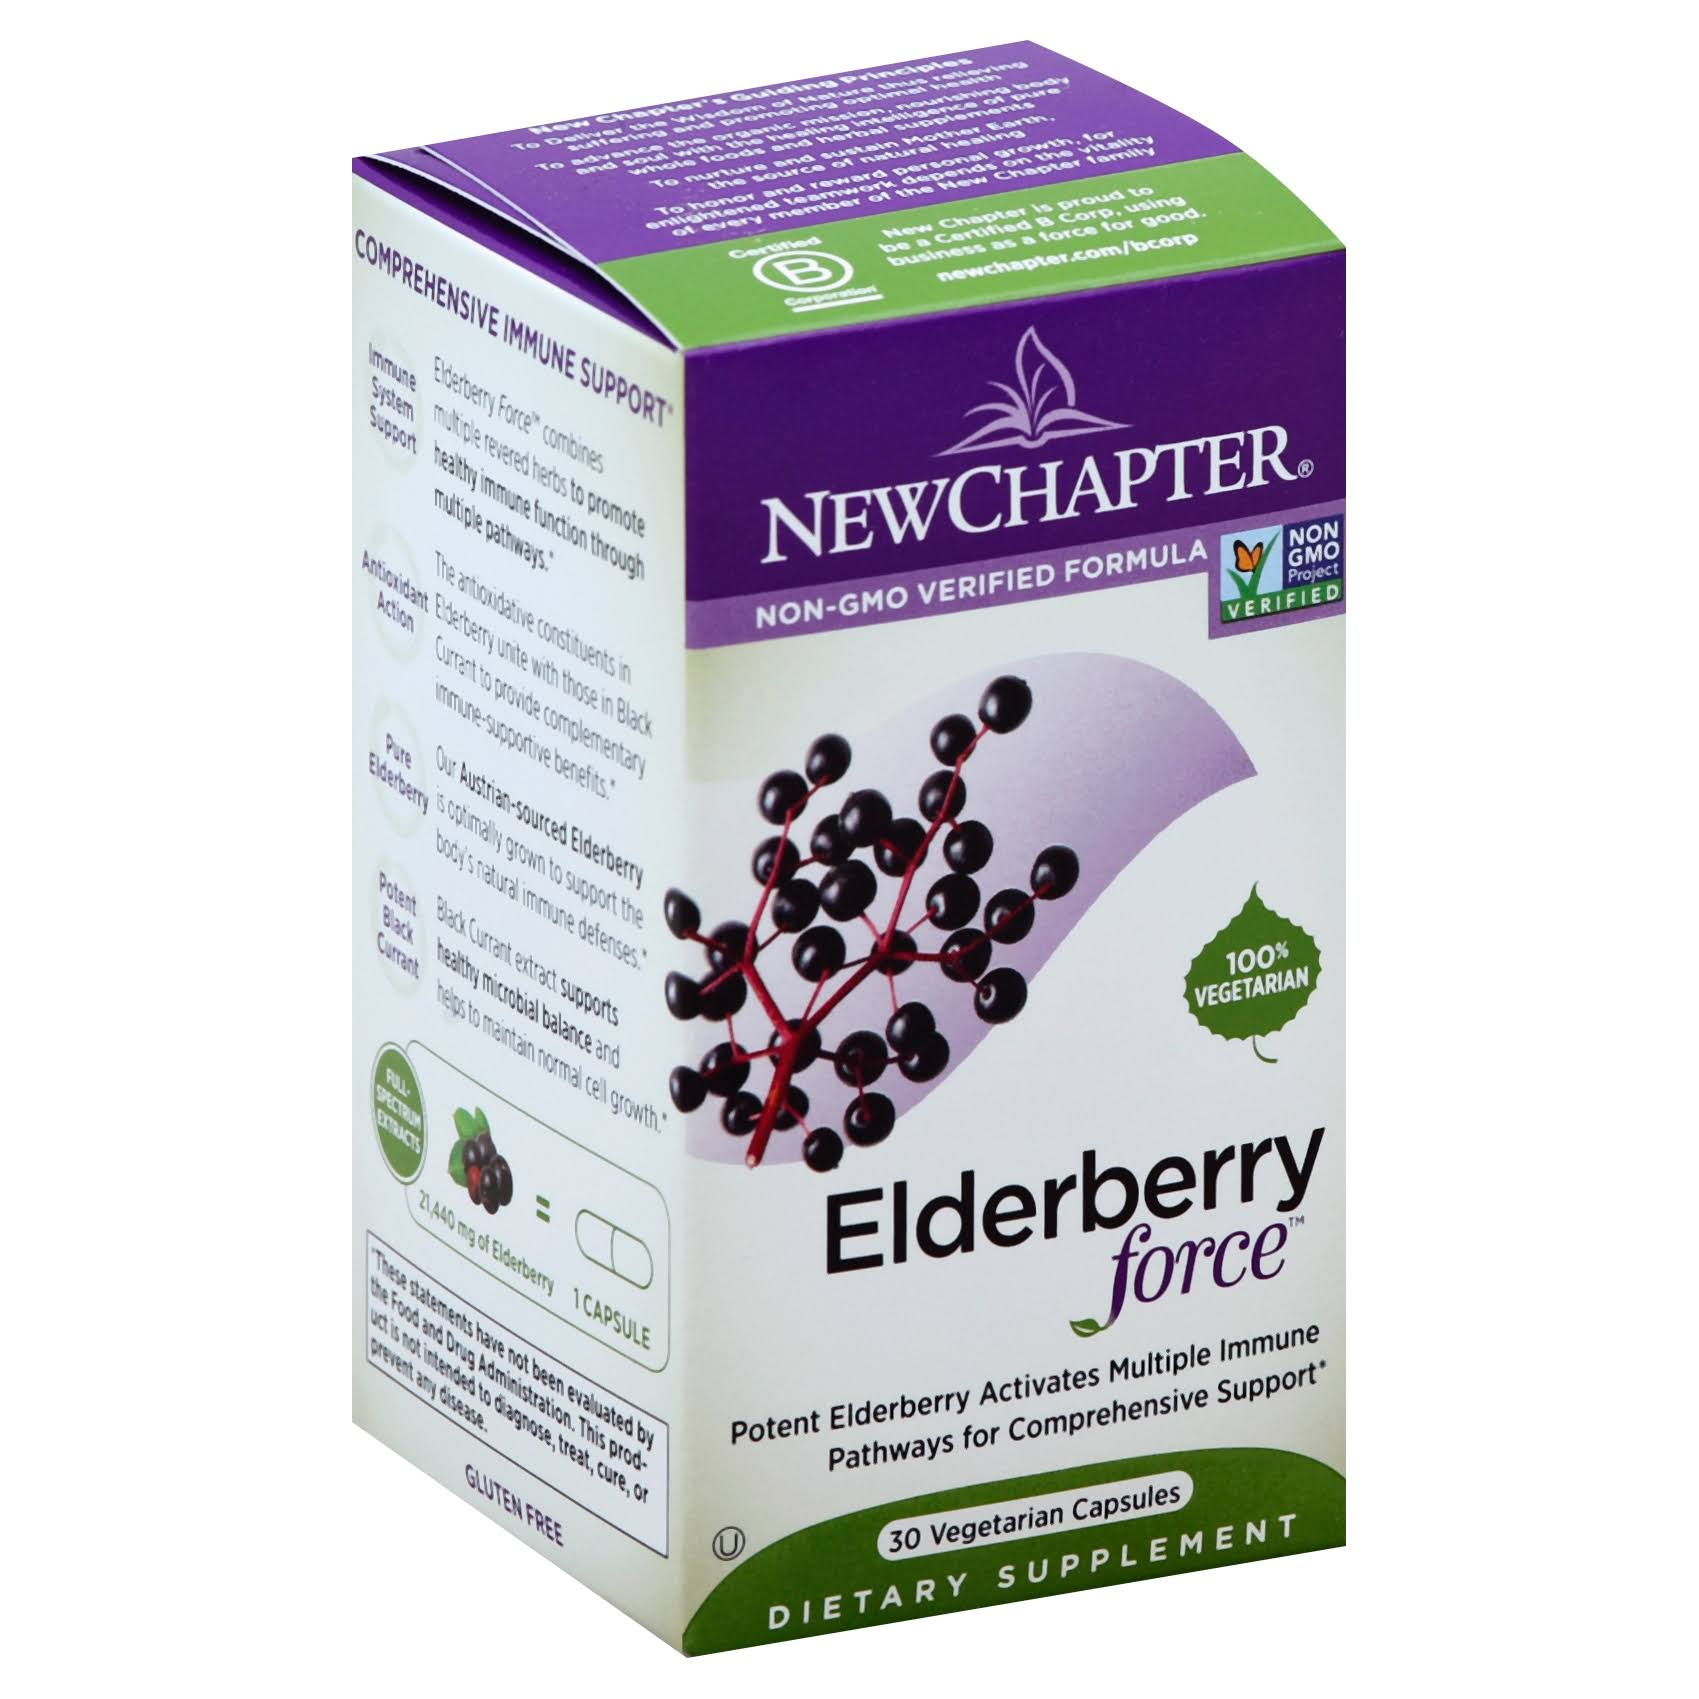 New Chapter Elderberry Force Dietary Supplement - 30 Capsules